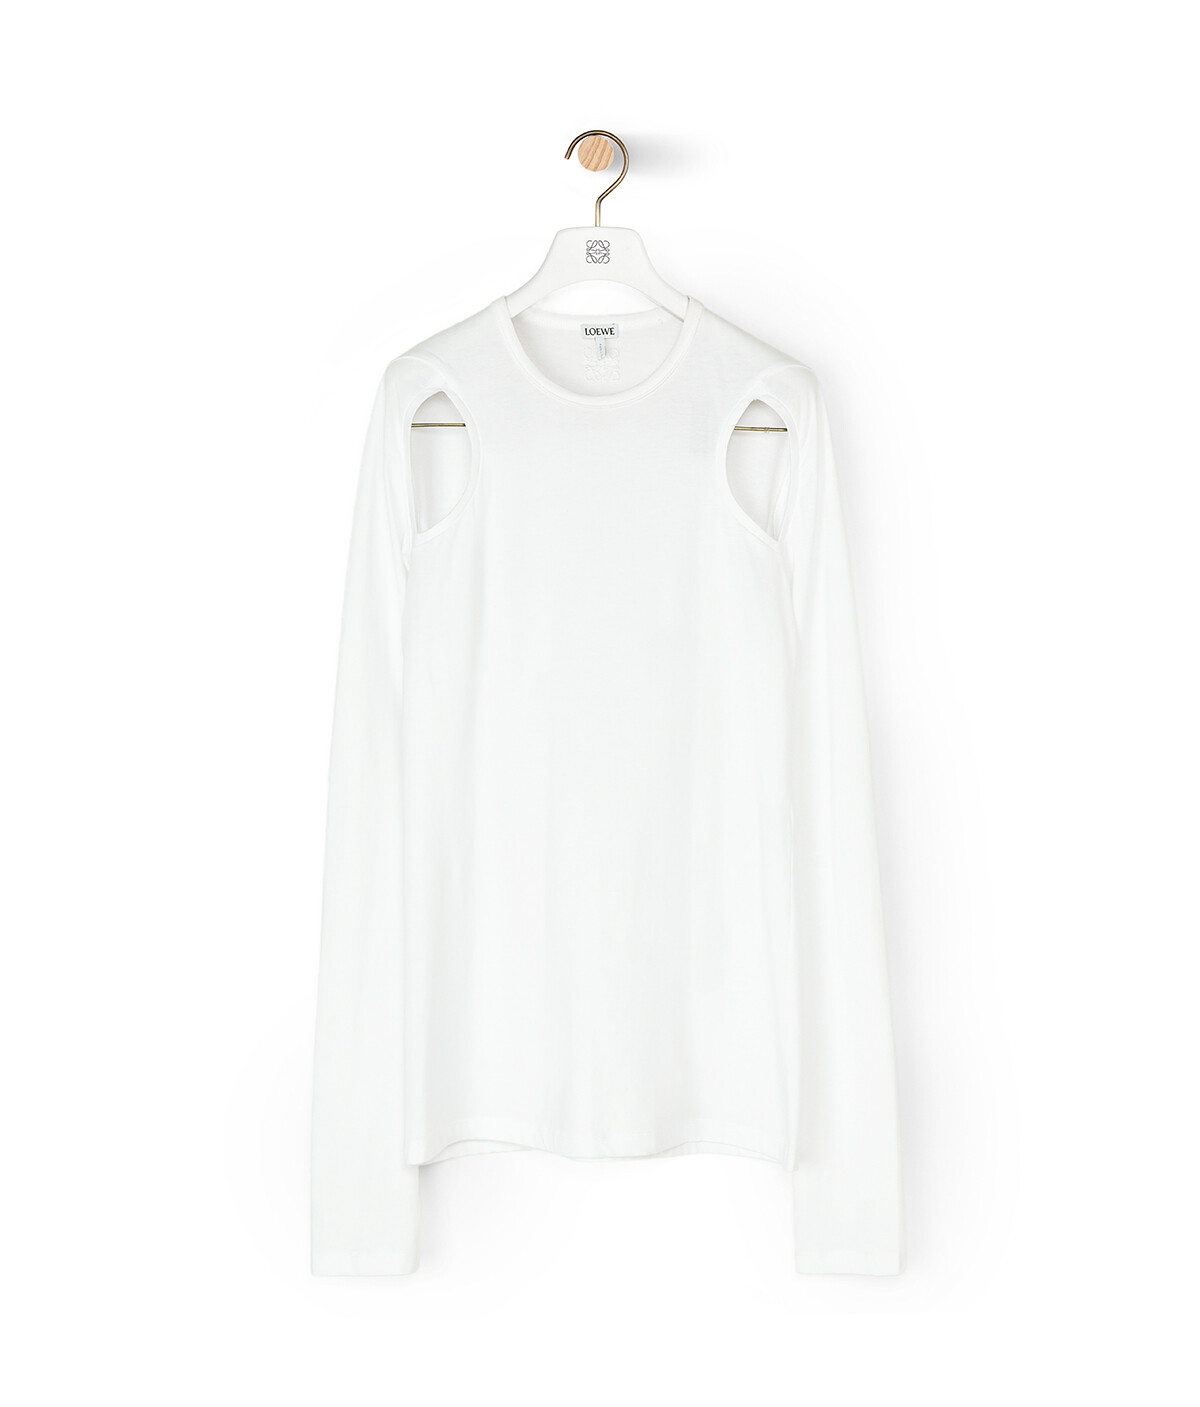 LOEWE Cut Out Long Slv T-Shirt White front